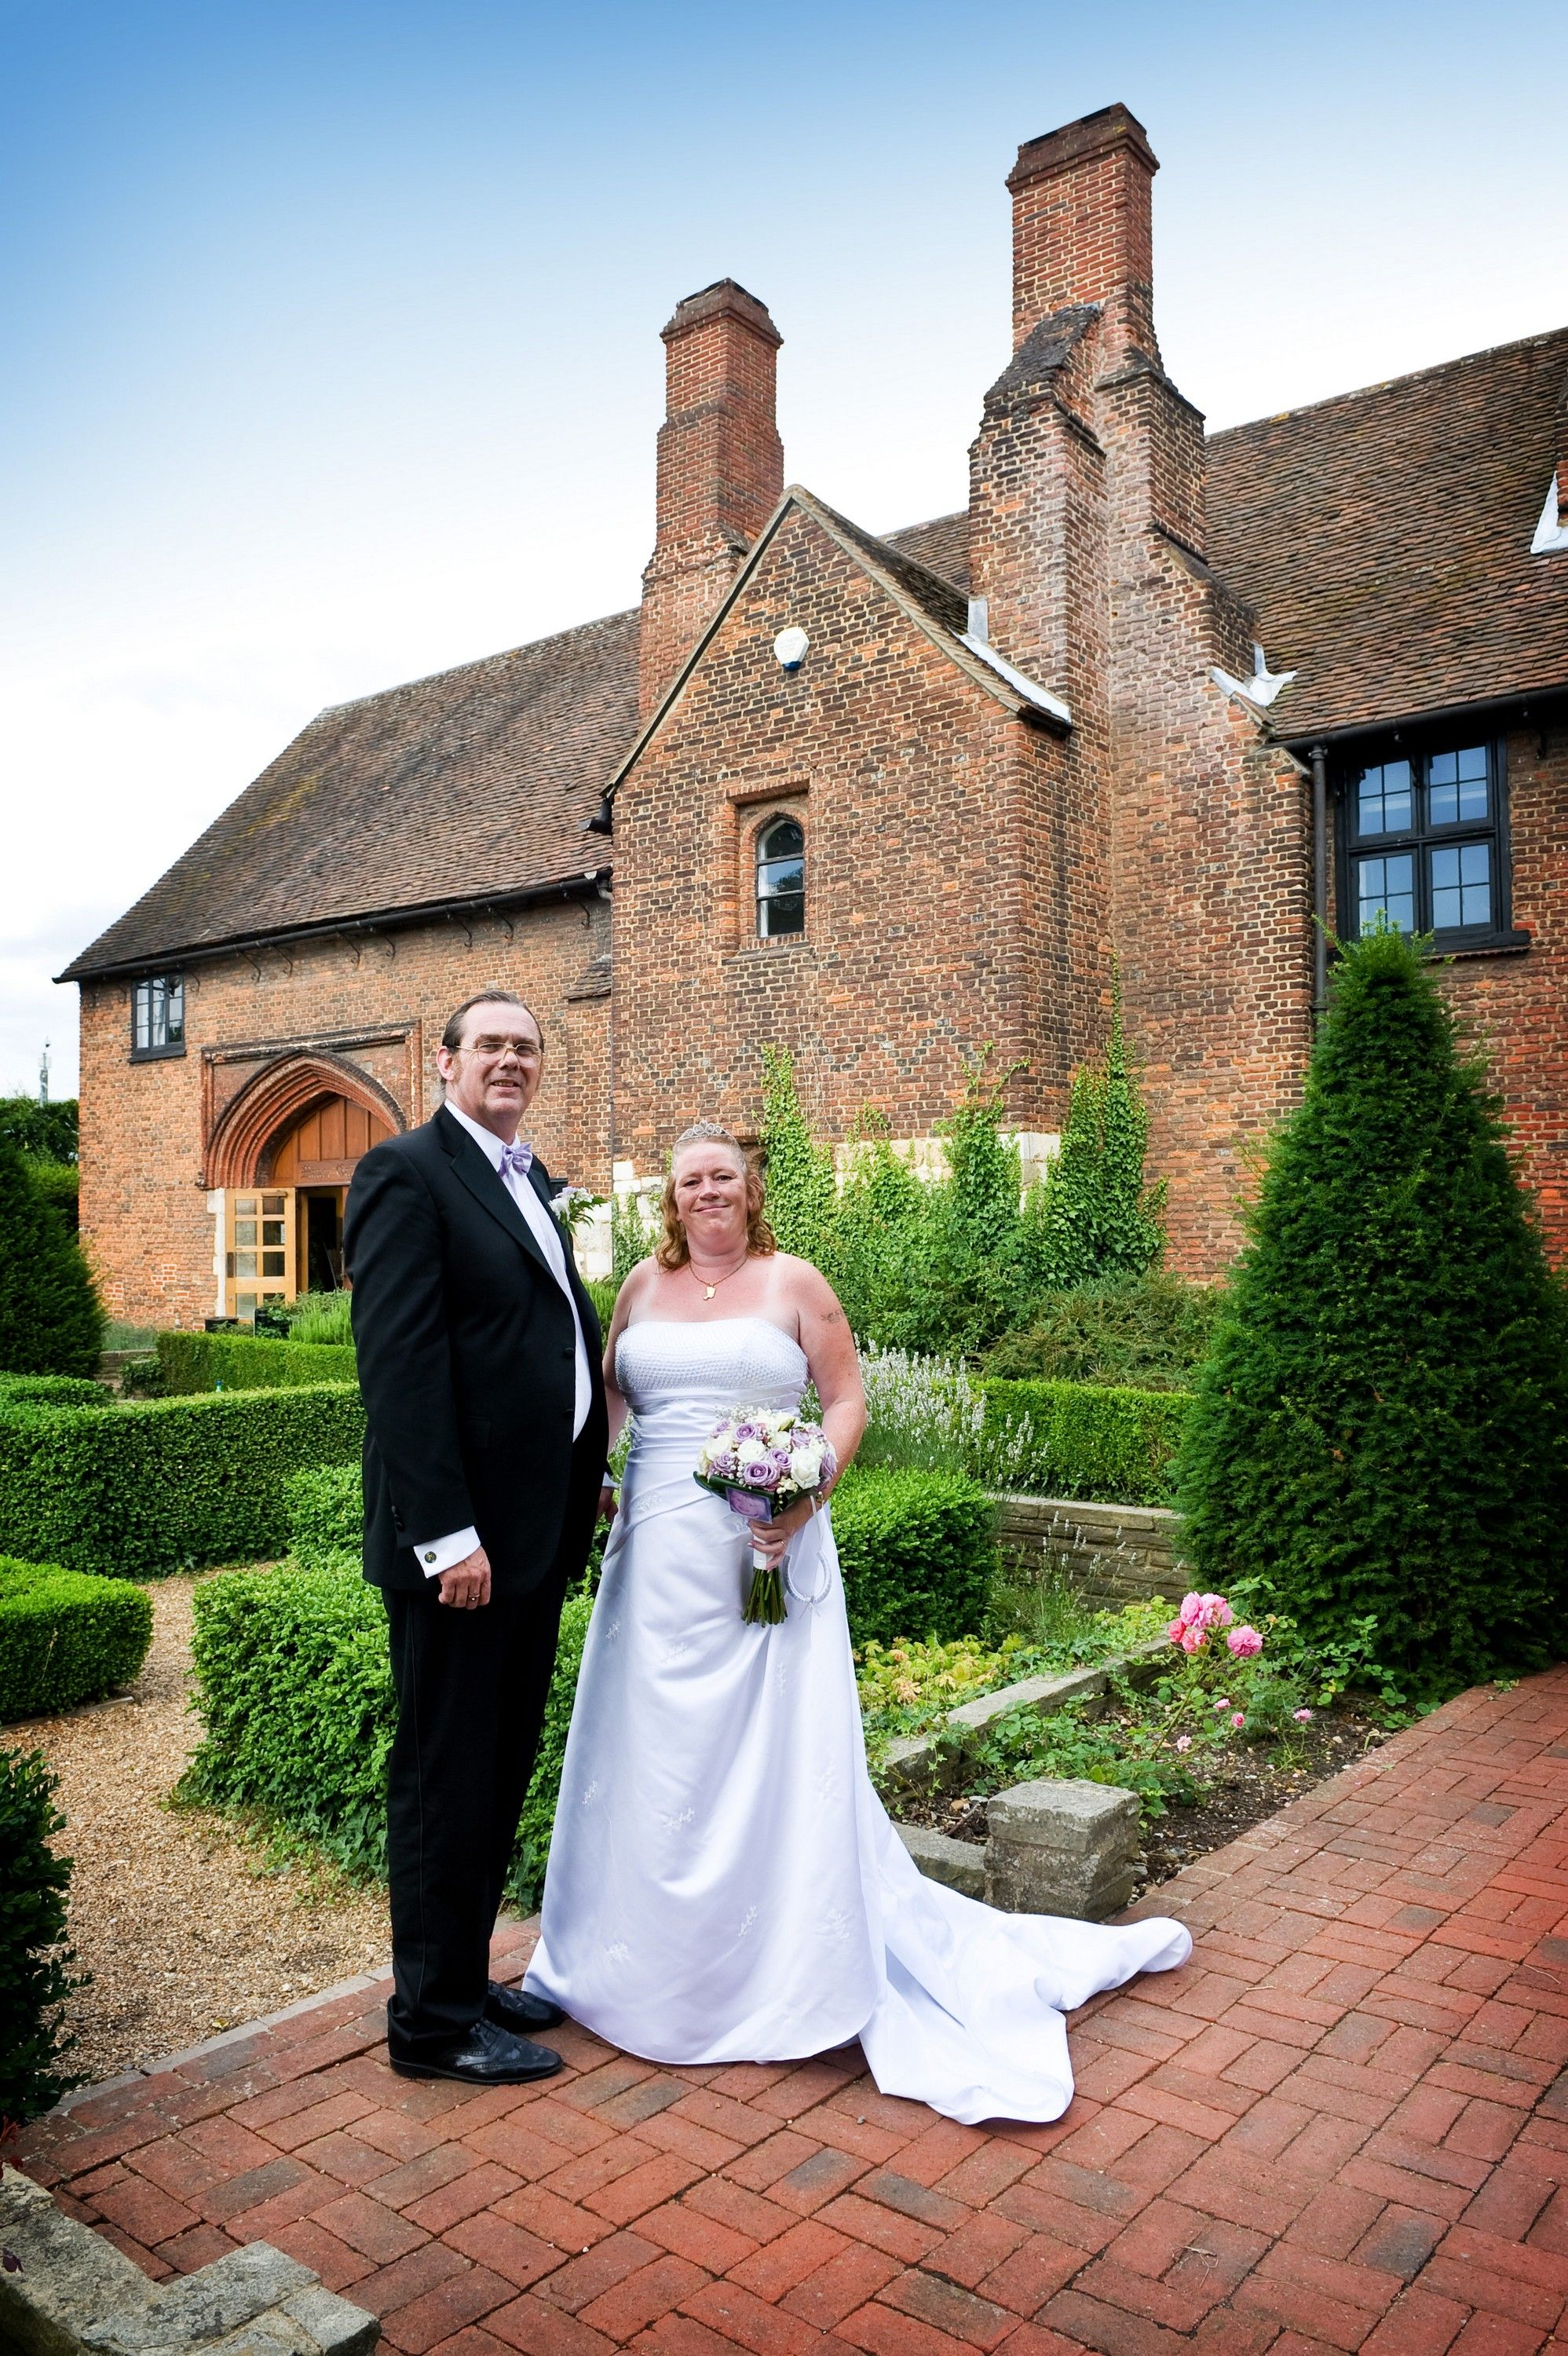 The Manor Gatehouse Dartford Kent County Civil Ceremony Offices Bureaus Office